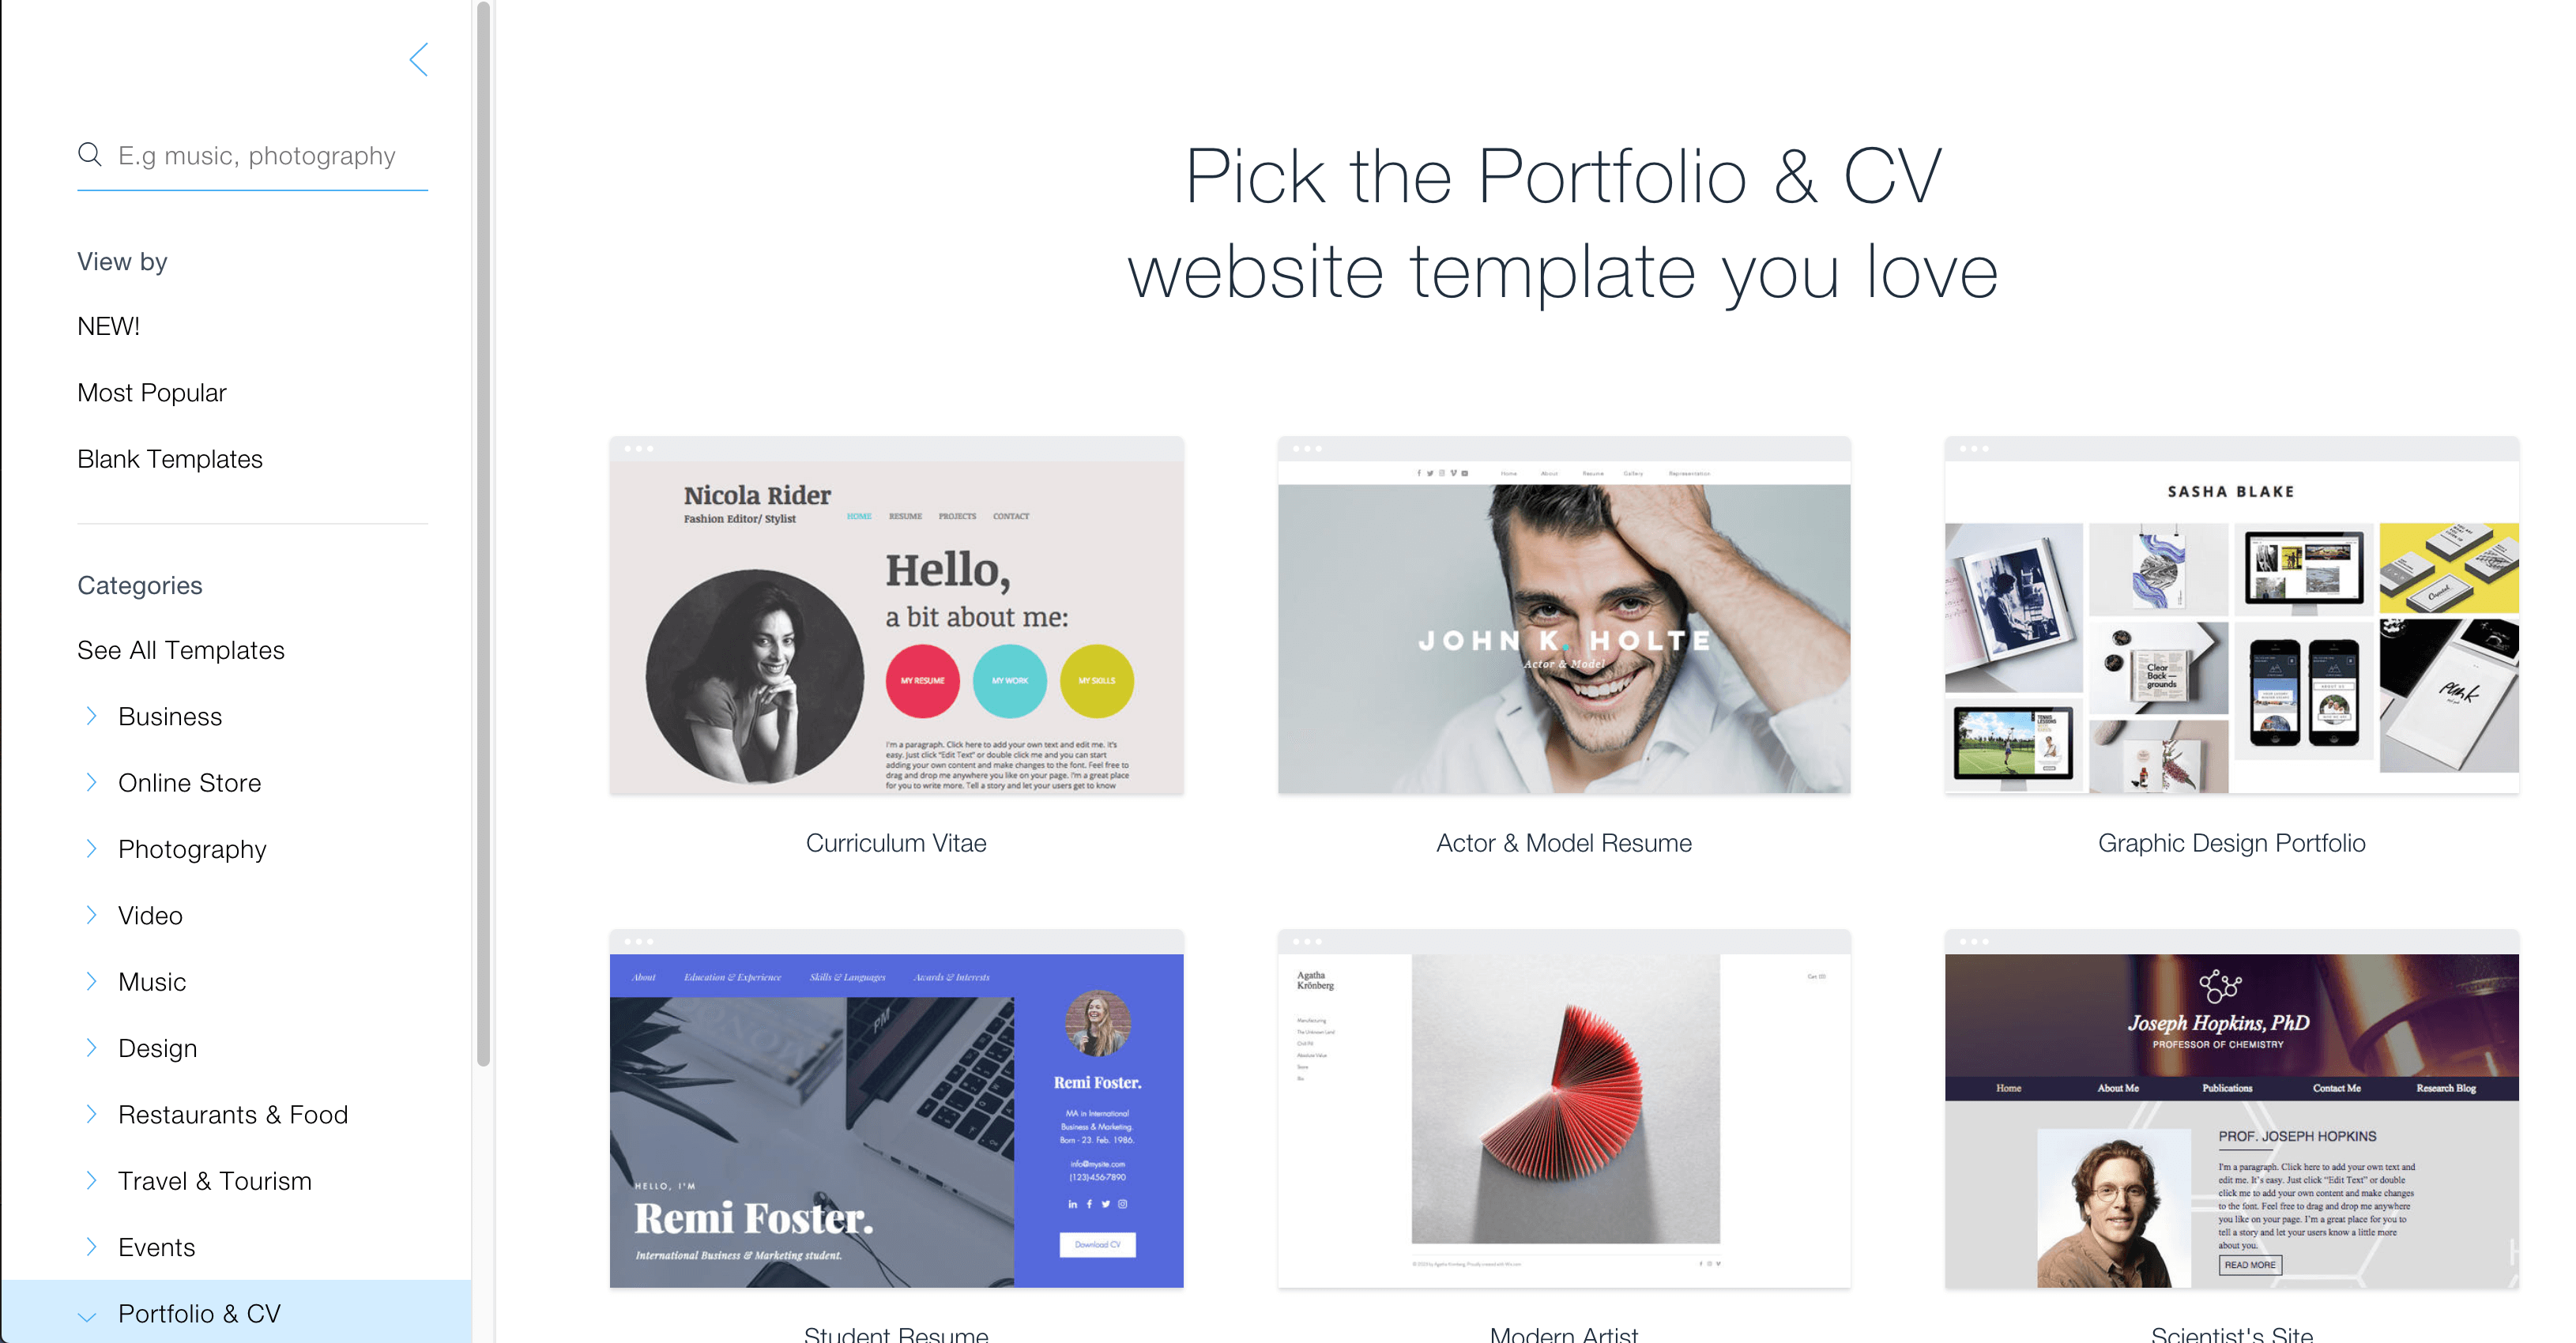 Available templates in Wix.